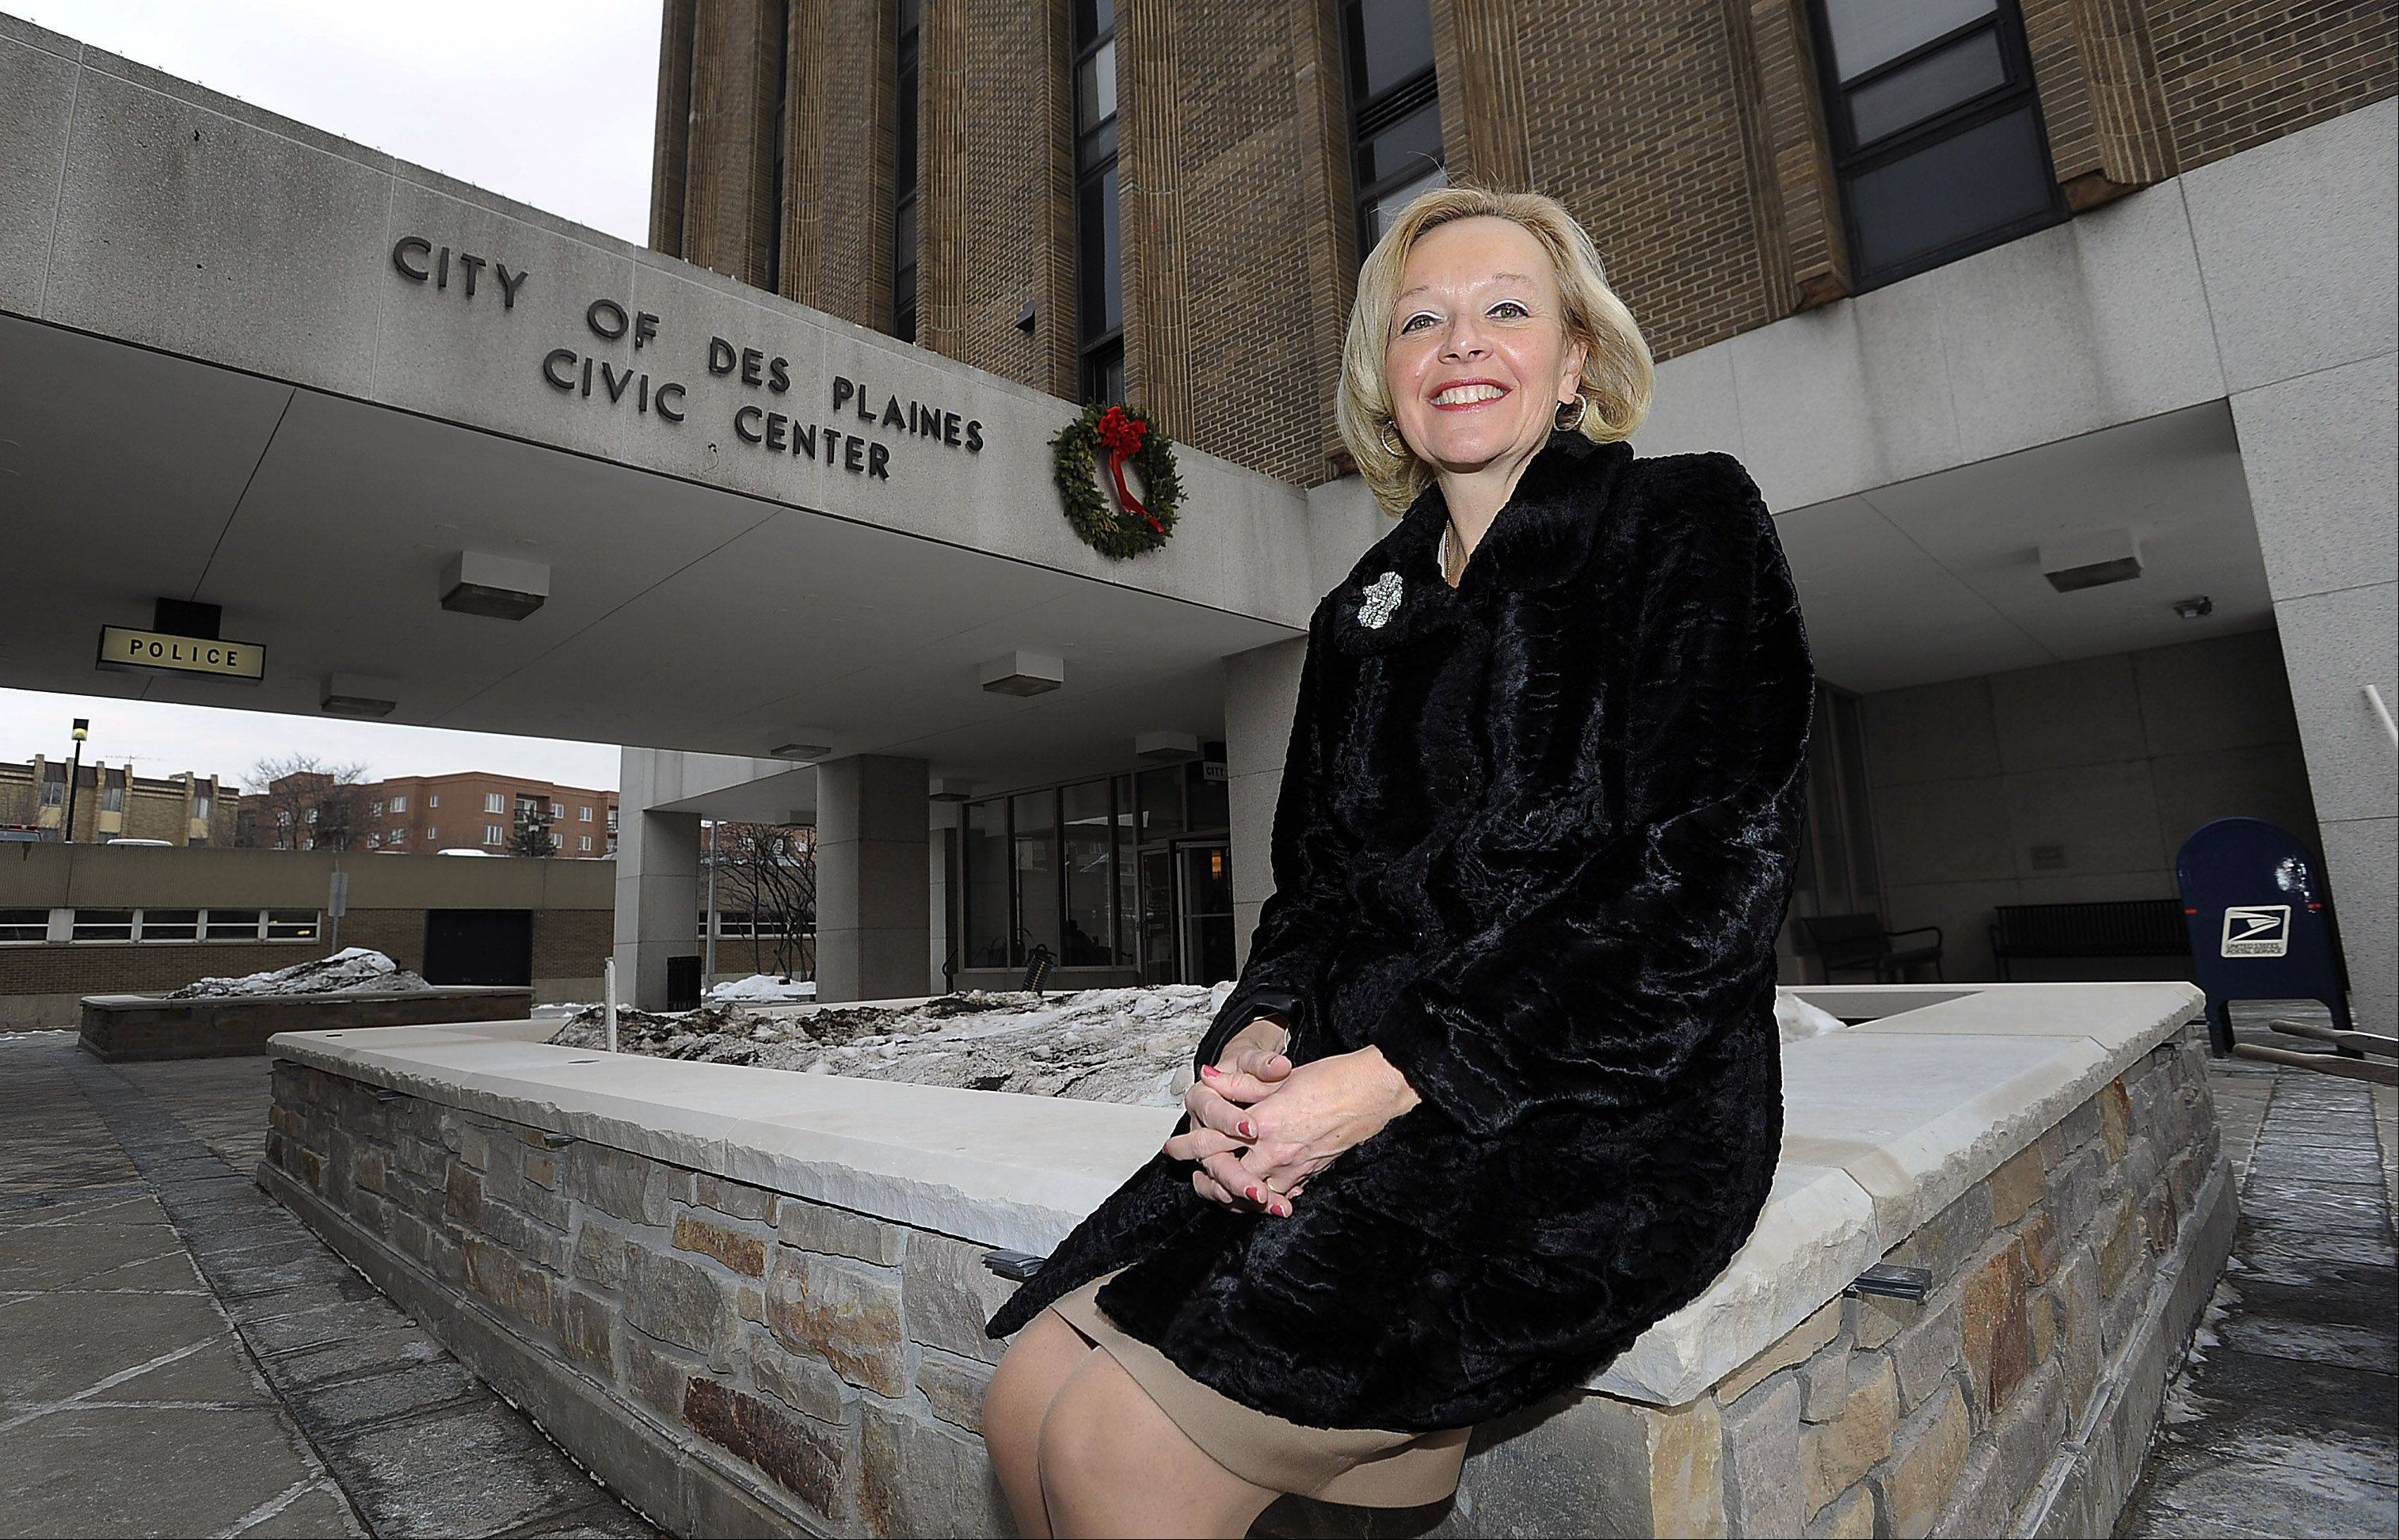 Karen Kozenczak has coordinated public relations for the city of Des Plaines for 35 years, serving under seven mayors, and having seen the changes in technology that she says have made her job better. On Friday, the Des Plaines native retired from her long-held post.